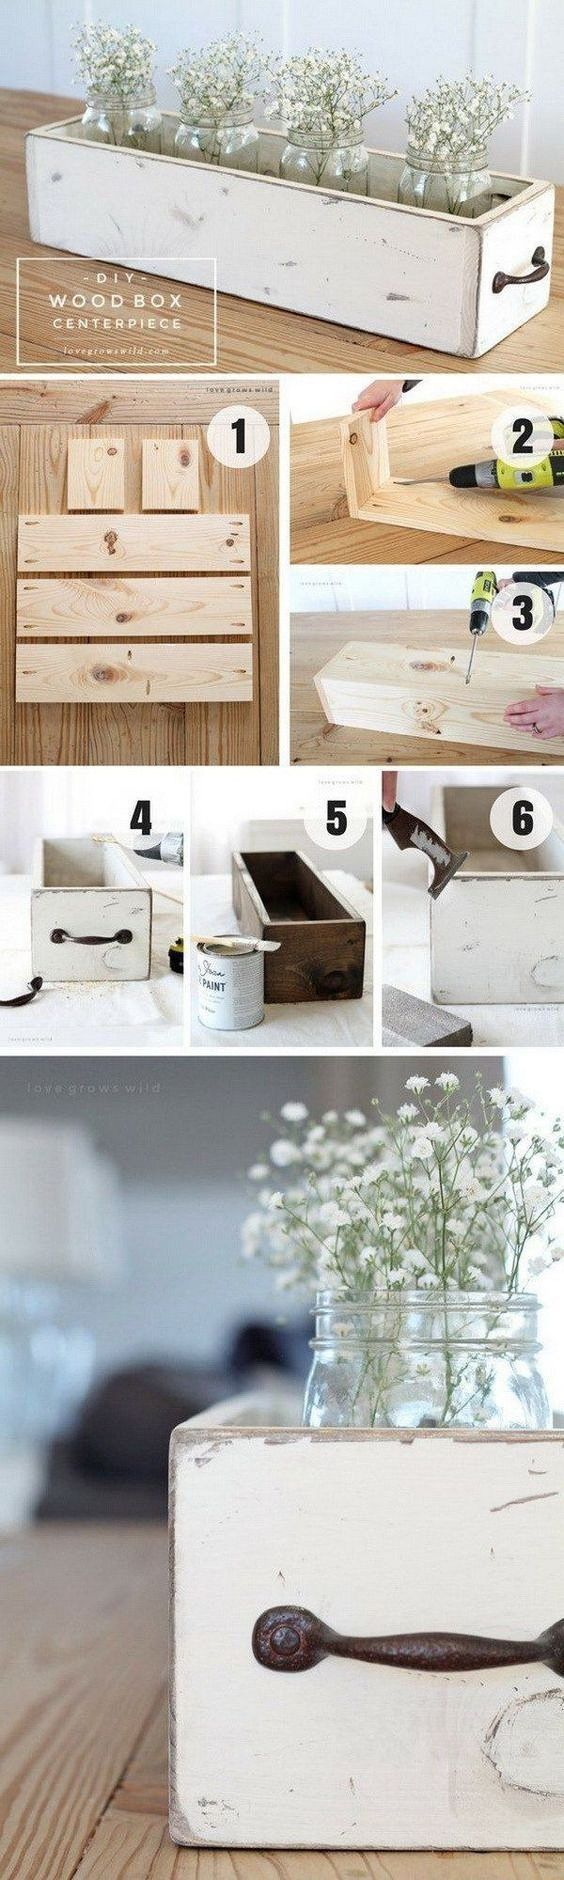 You must be always looking at decoration magazines and thinking how to make your houses more homey, stylish or trendy. A DIY home project is the easiest way to liven up and beautify your space on a budget. It is also a fun and meaningful activity to spend the spare time, weekends and slower holidays. … ** For more information, visit image link. #101homedecor #howtomakerusticfurniture #woodworkathome